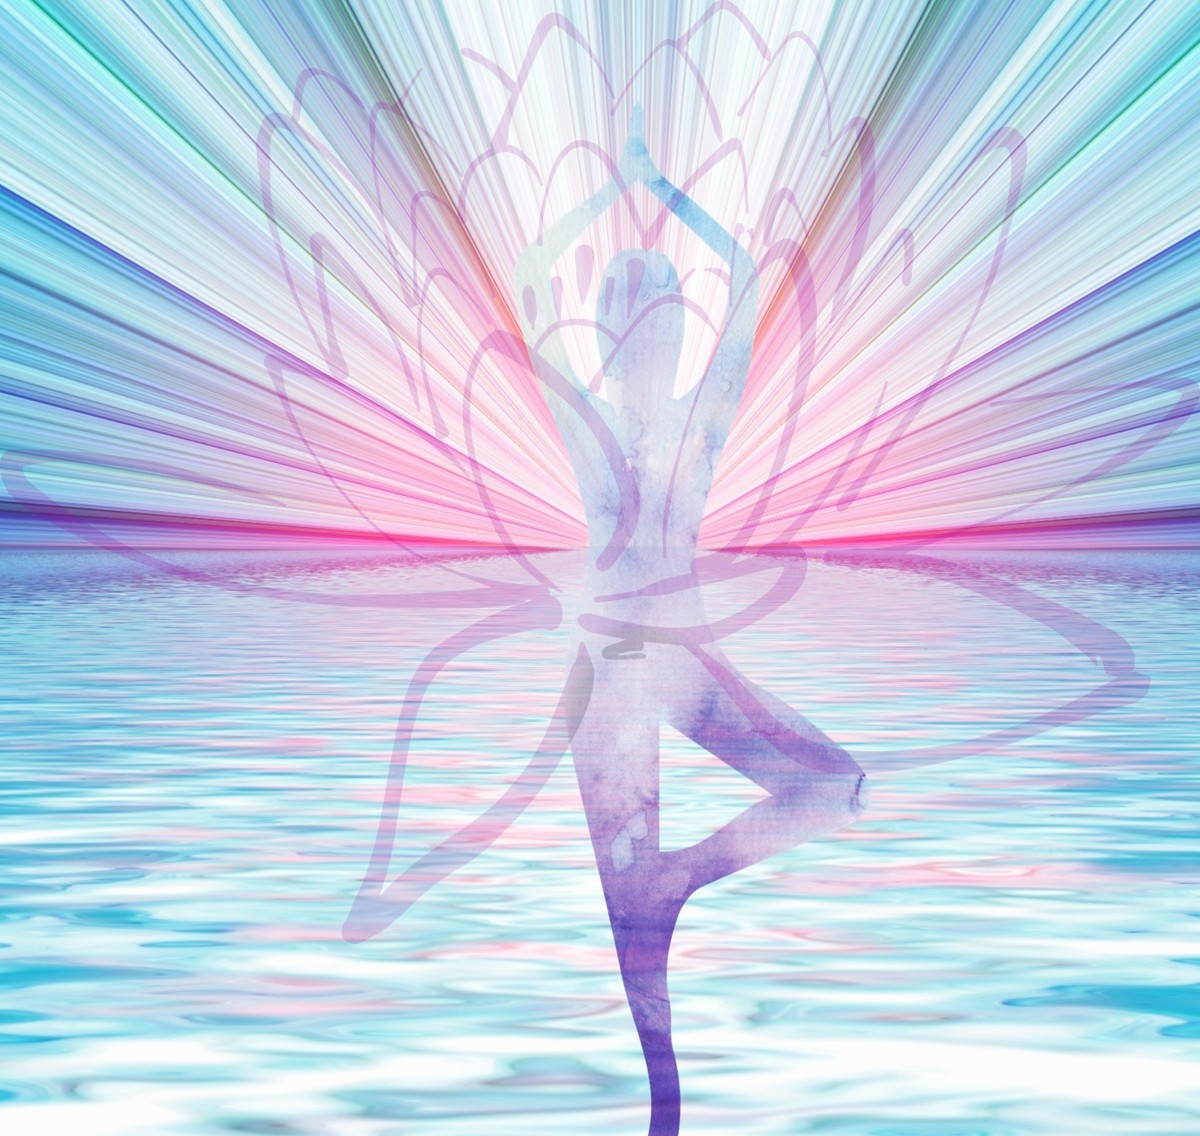 Karmic forces are released through our actions and inactions here on earth.